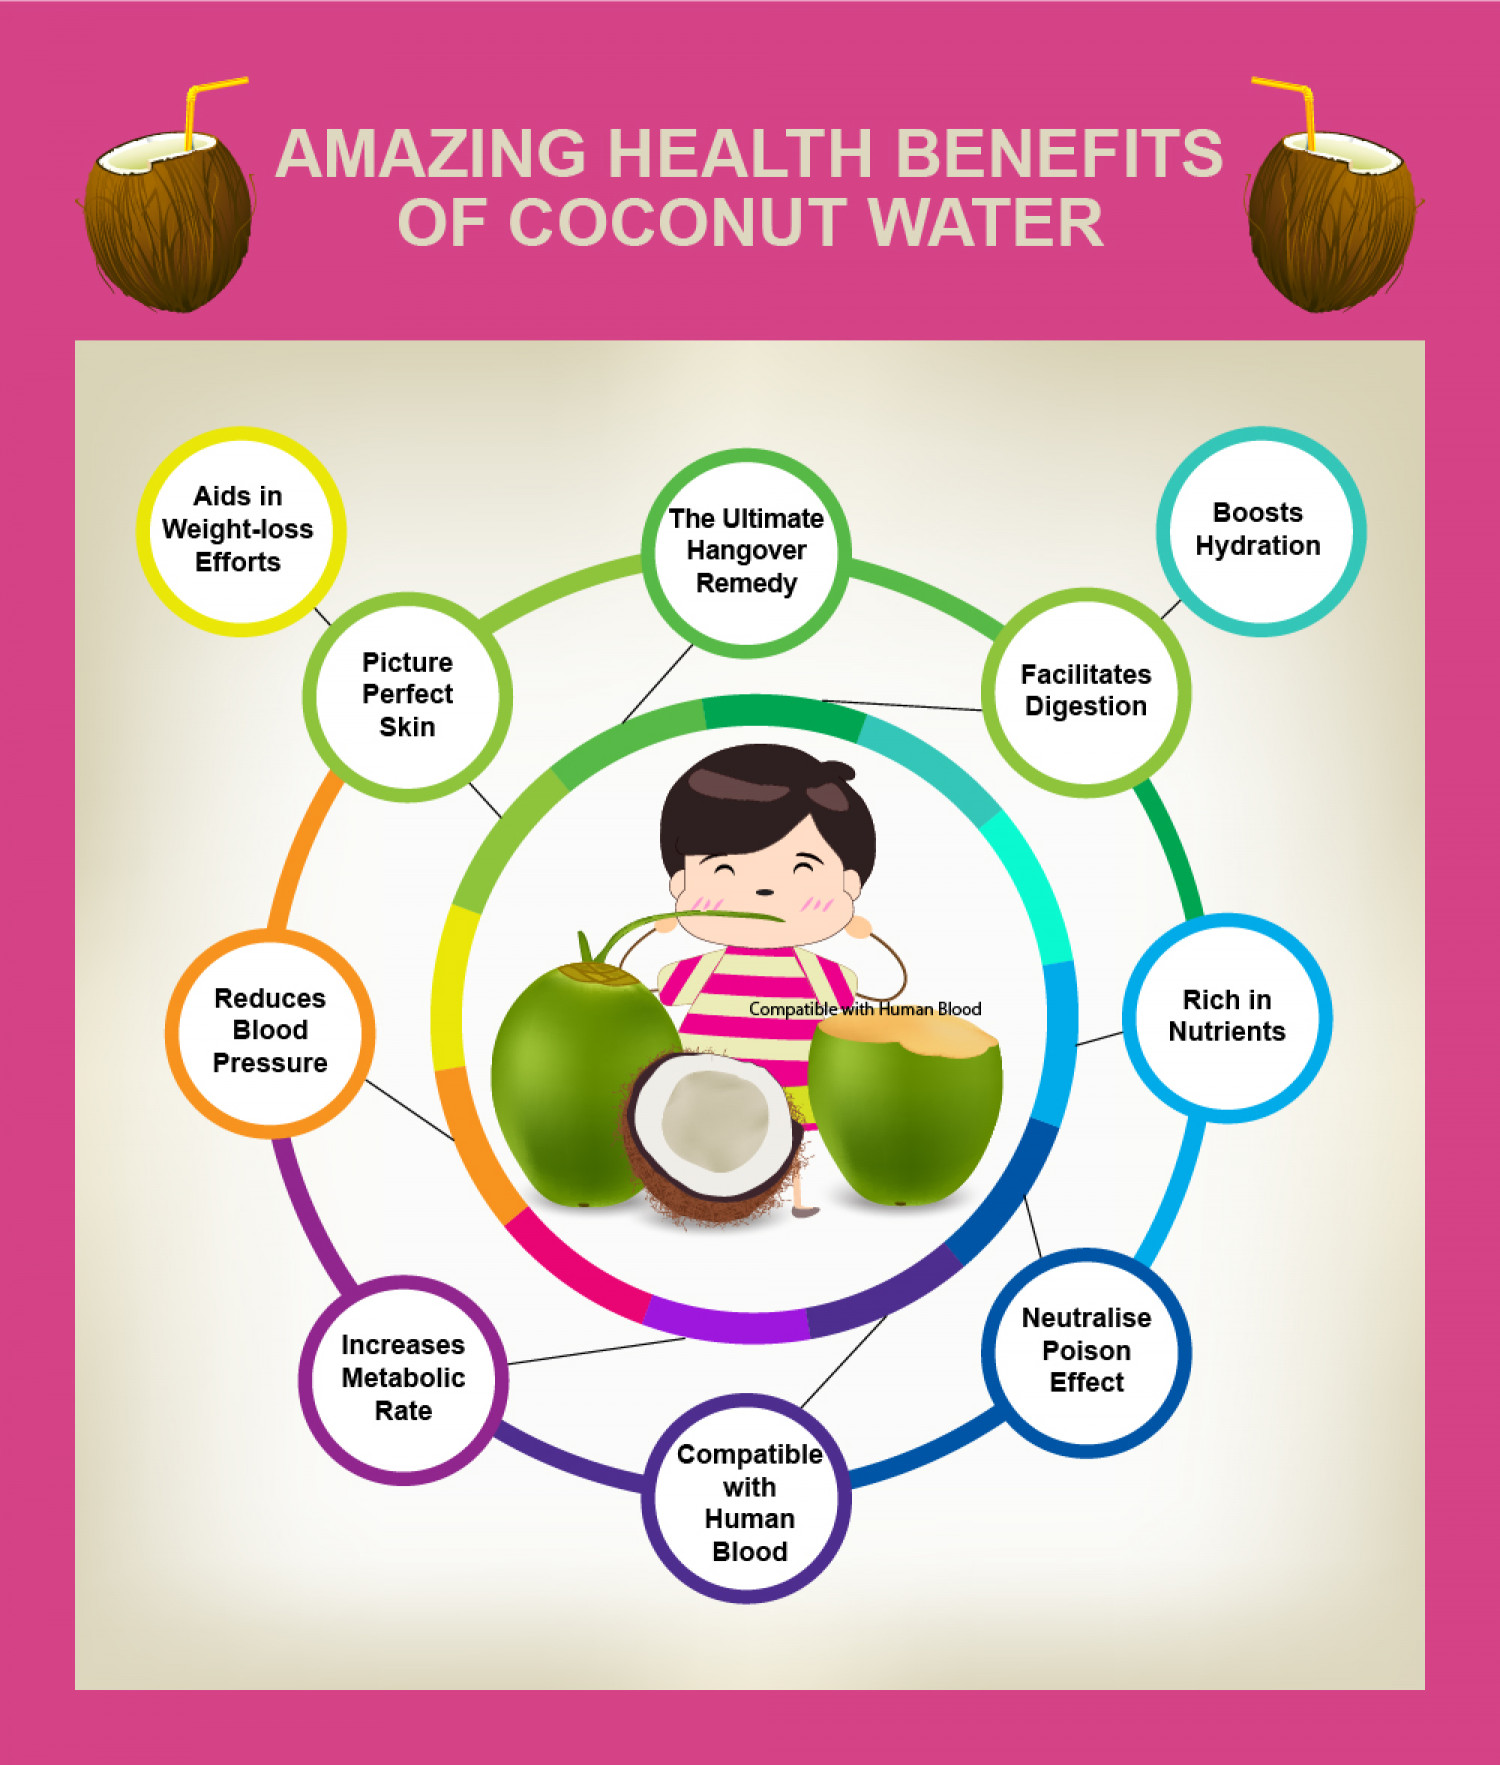 amazing health benefits of coconut water | visual.ly